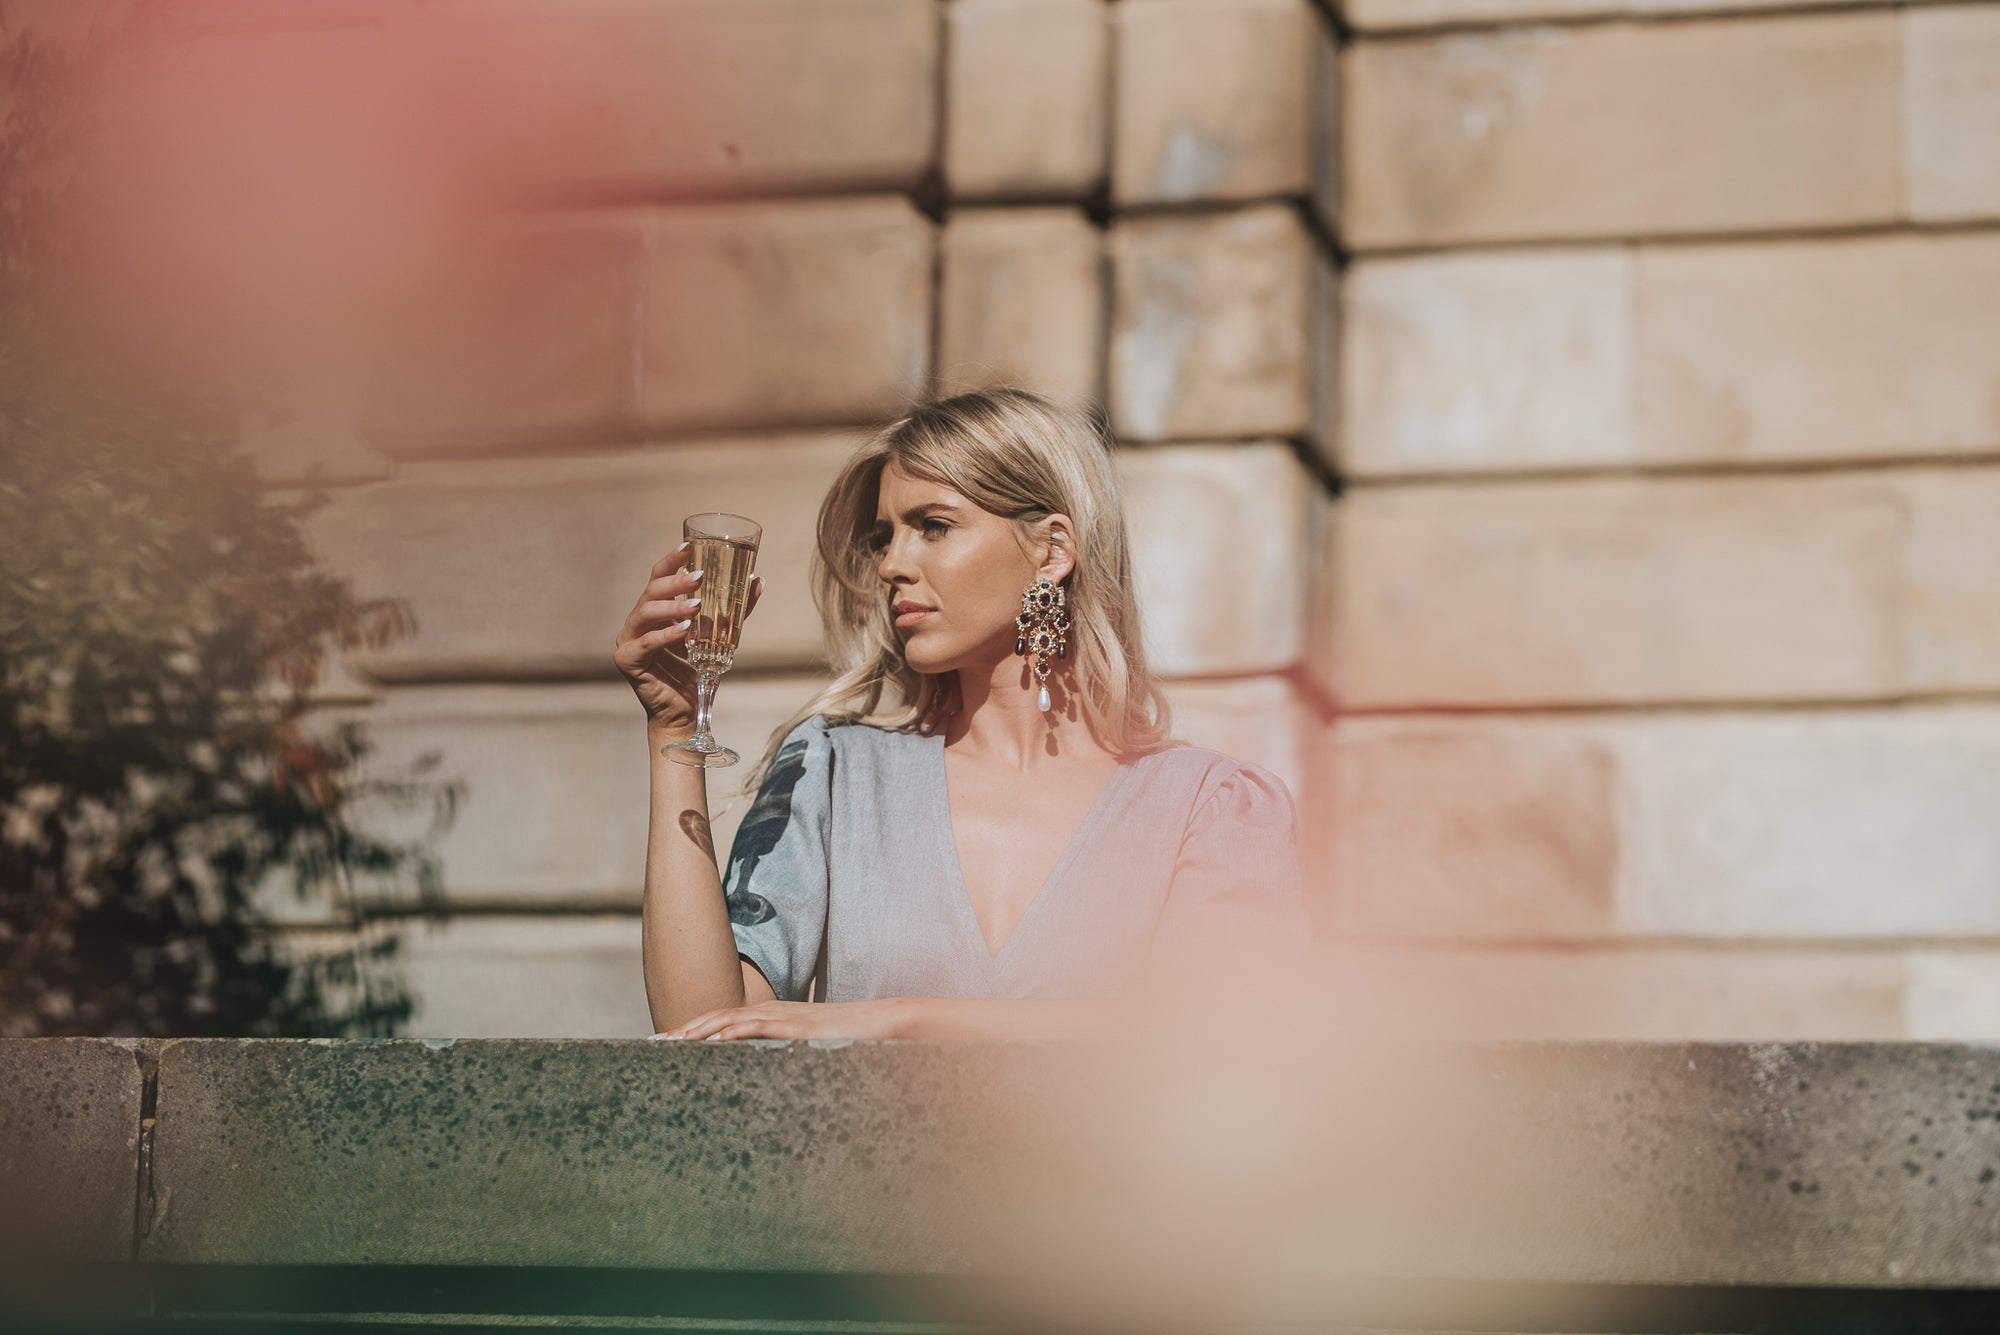 Image shows the Alice Dress, the perfect wedding guest outfit. Calla poses with champagne in hand over a romantic stone balcony. Shining in the sun she has her arm placed in the cool stone and you can clearly see the elegant blue wrap front of the dress.